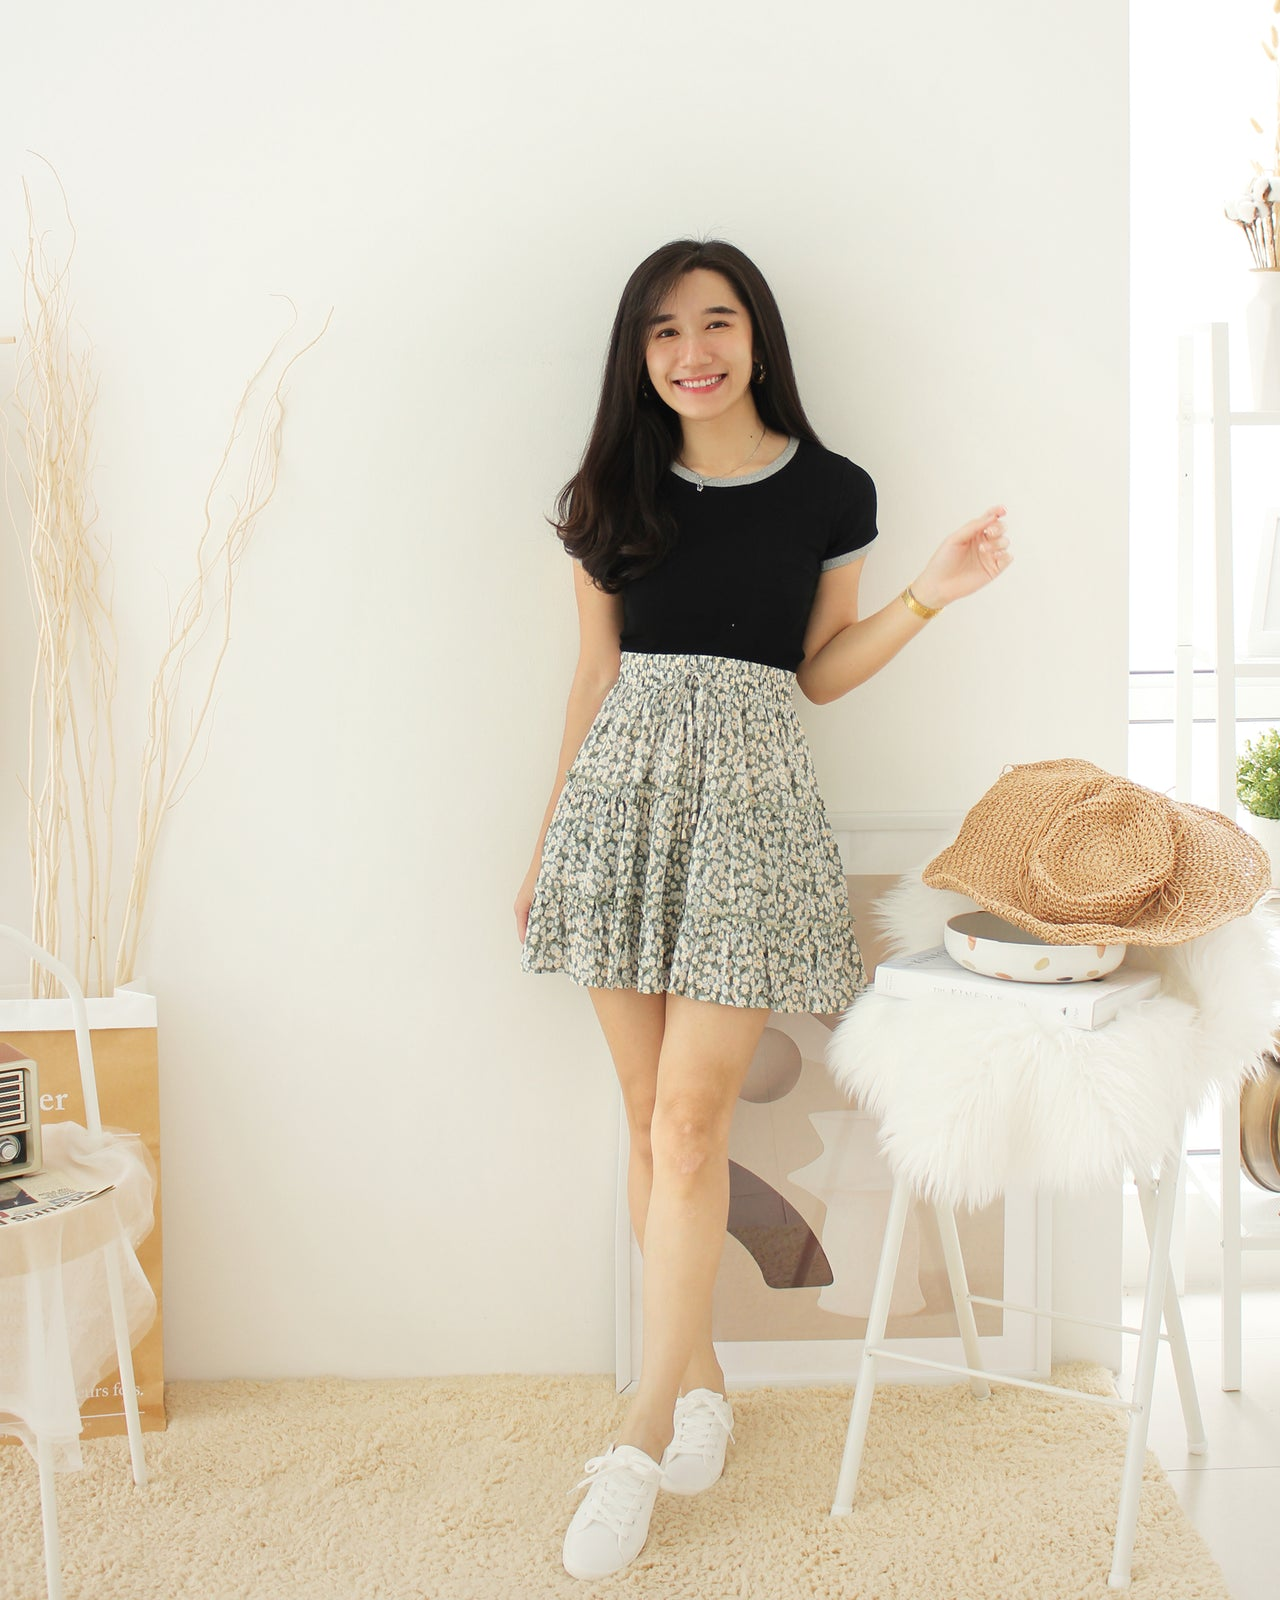 Nora Floral Print Skirt - LovelyMadness Clothing Online Fashion Malaysia